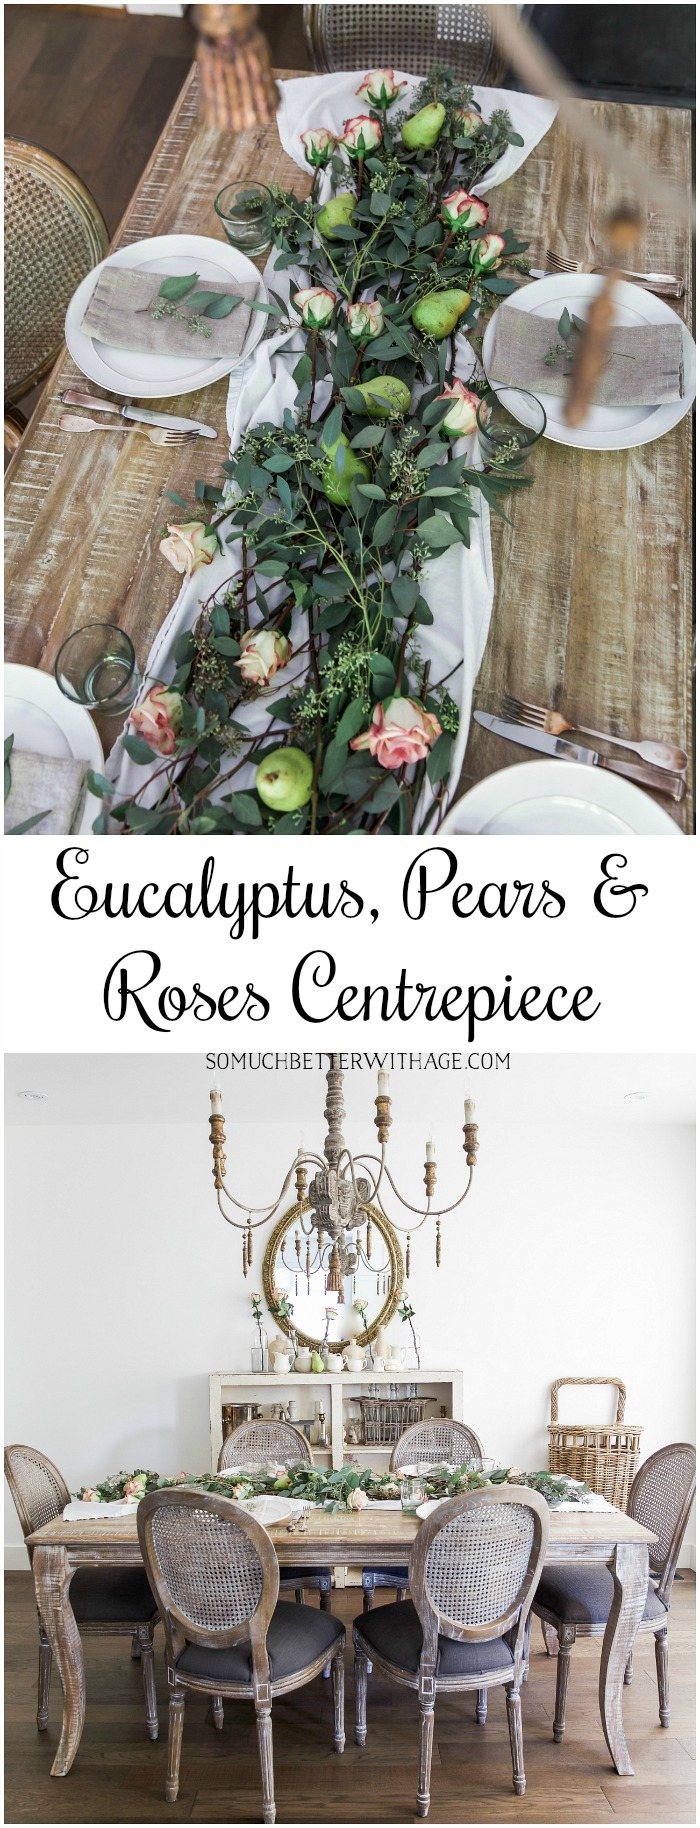 Eucalyptus, Pears and Roses Centrepiece - So Much Better With Age